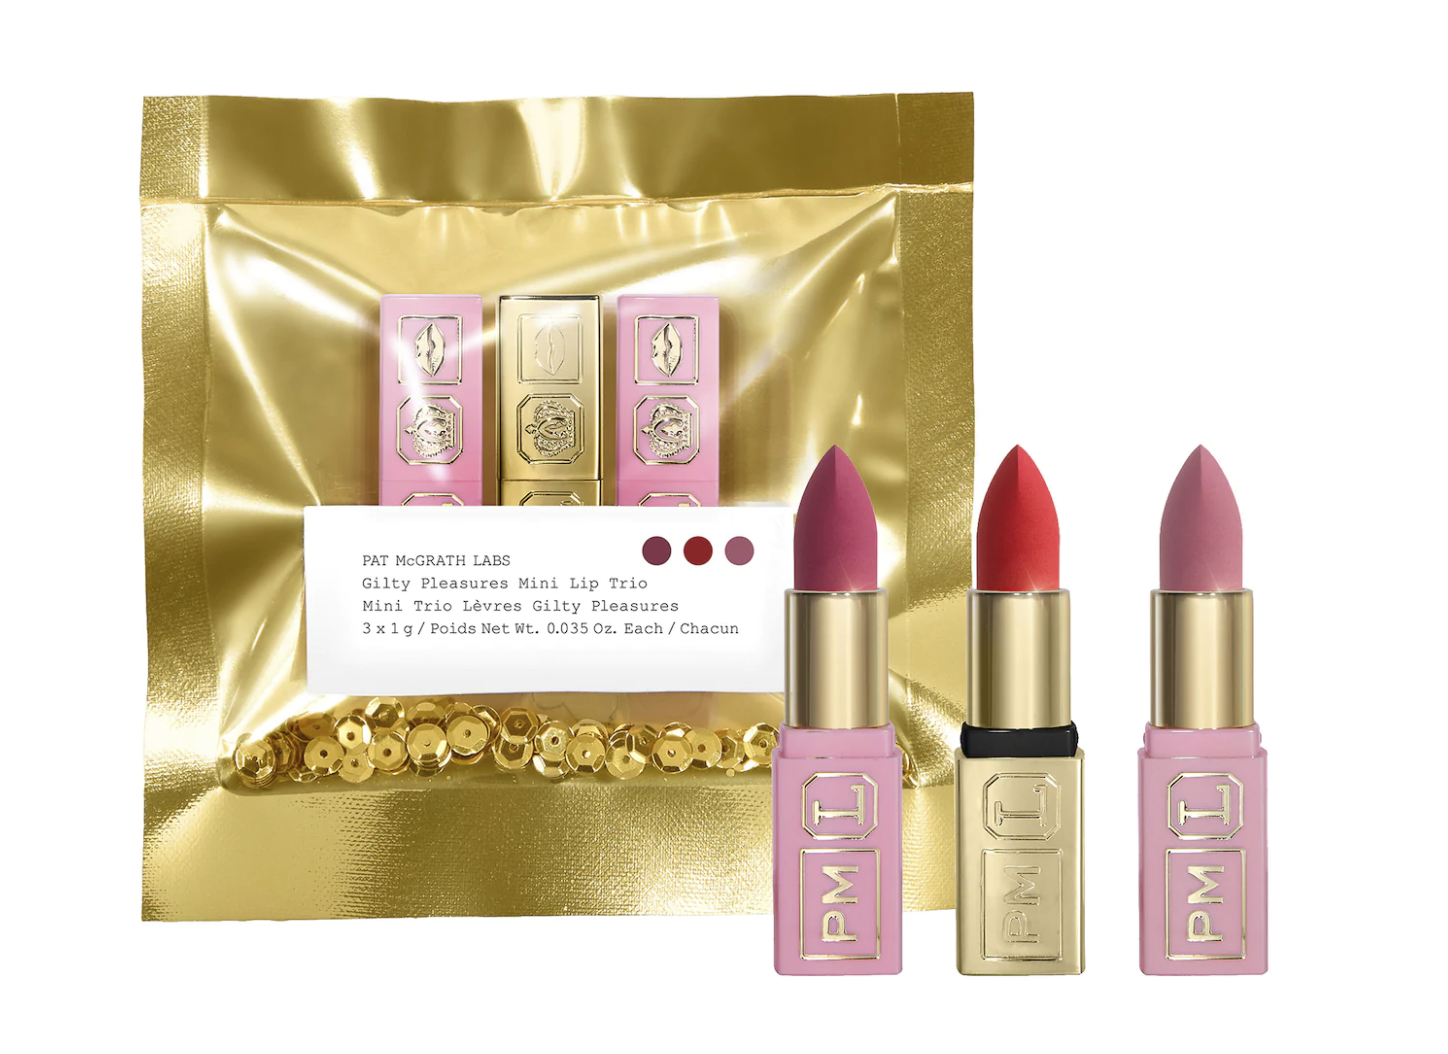 three lipsticks from the brand which are pink, mauve, and red. They come in a gold package.